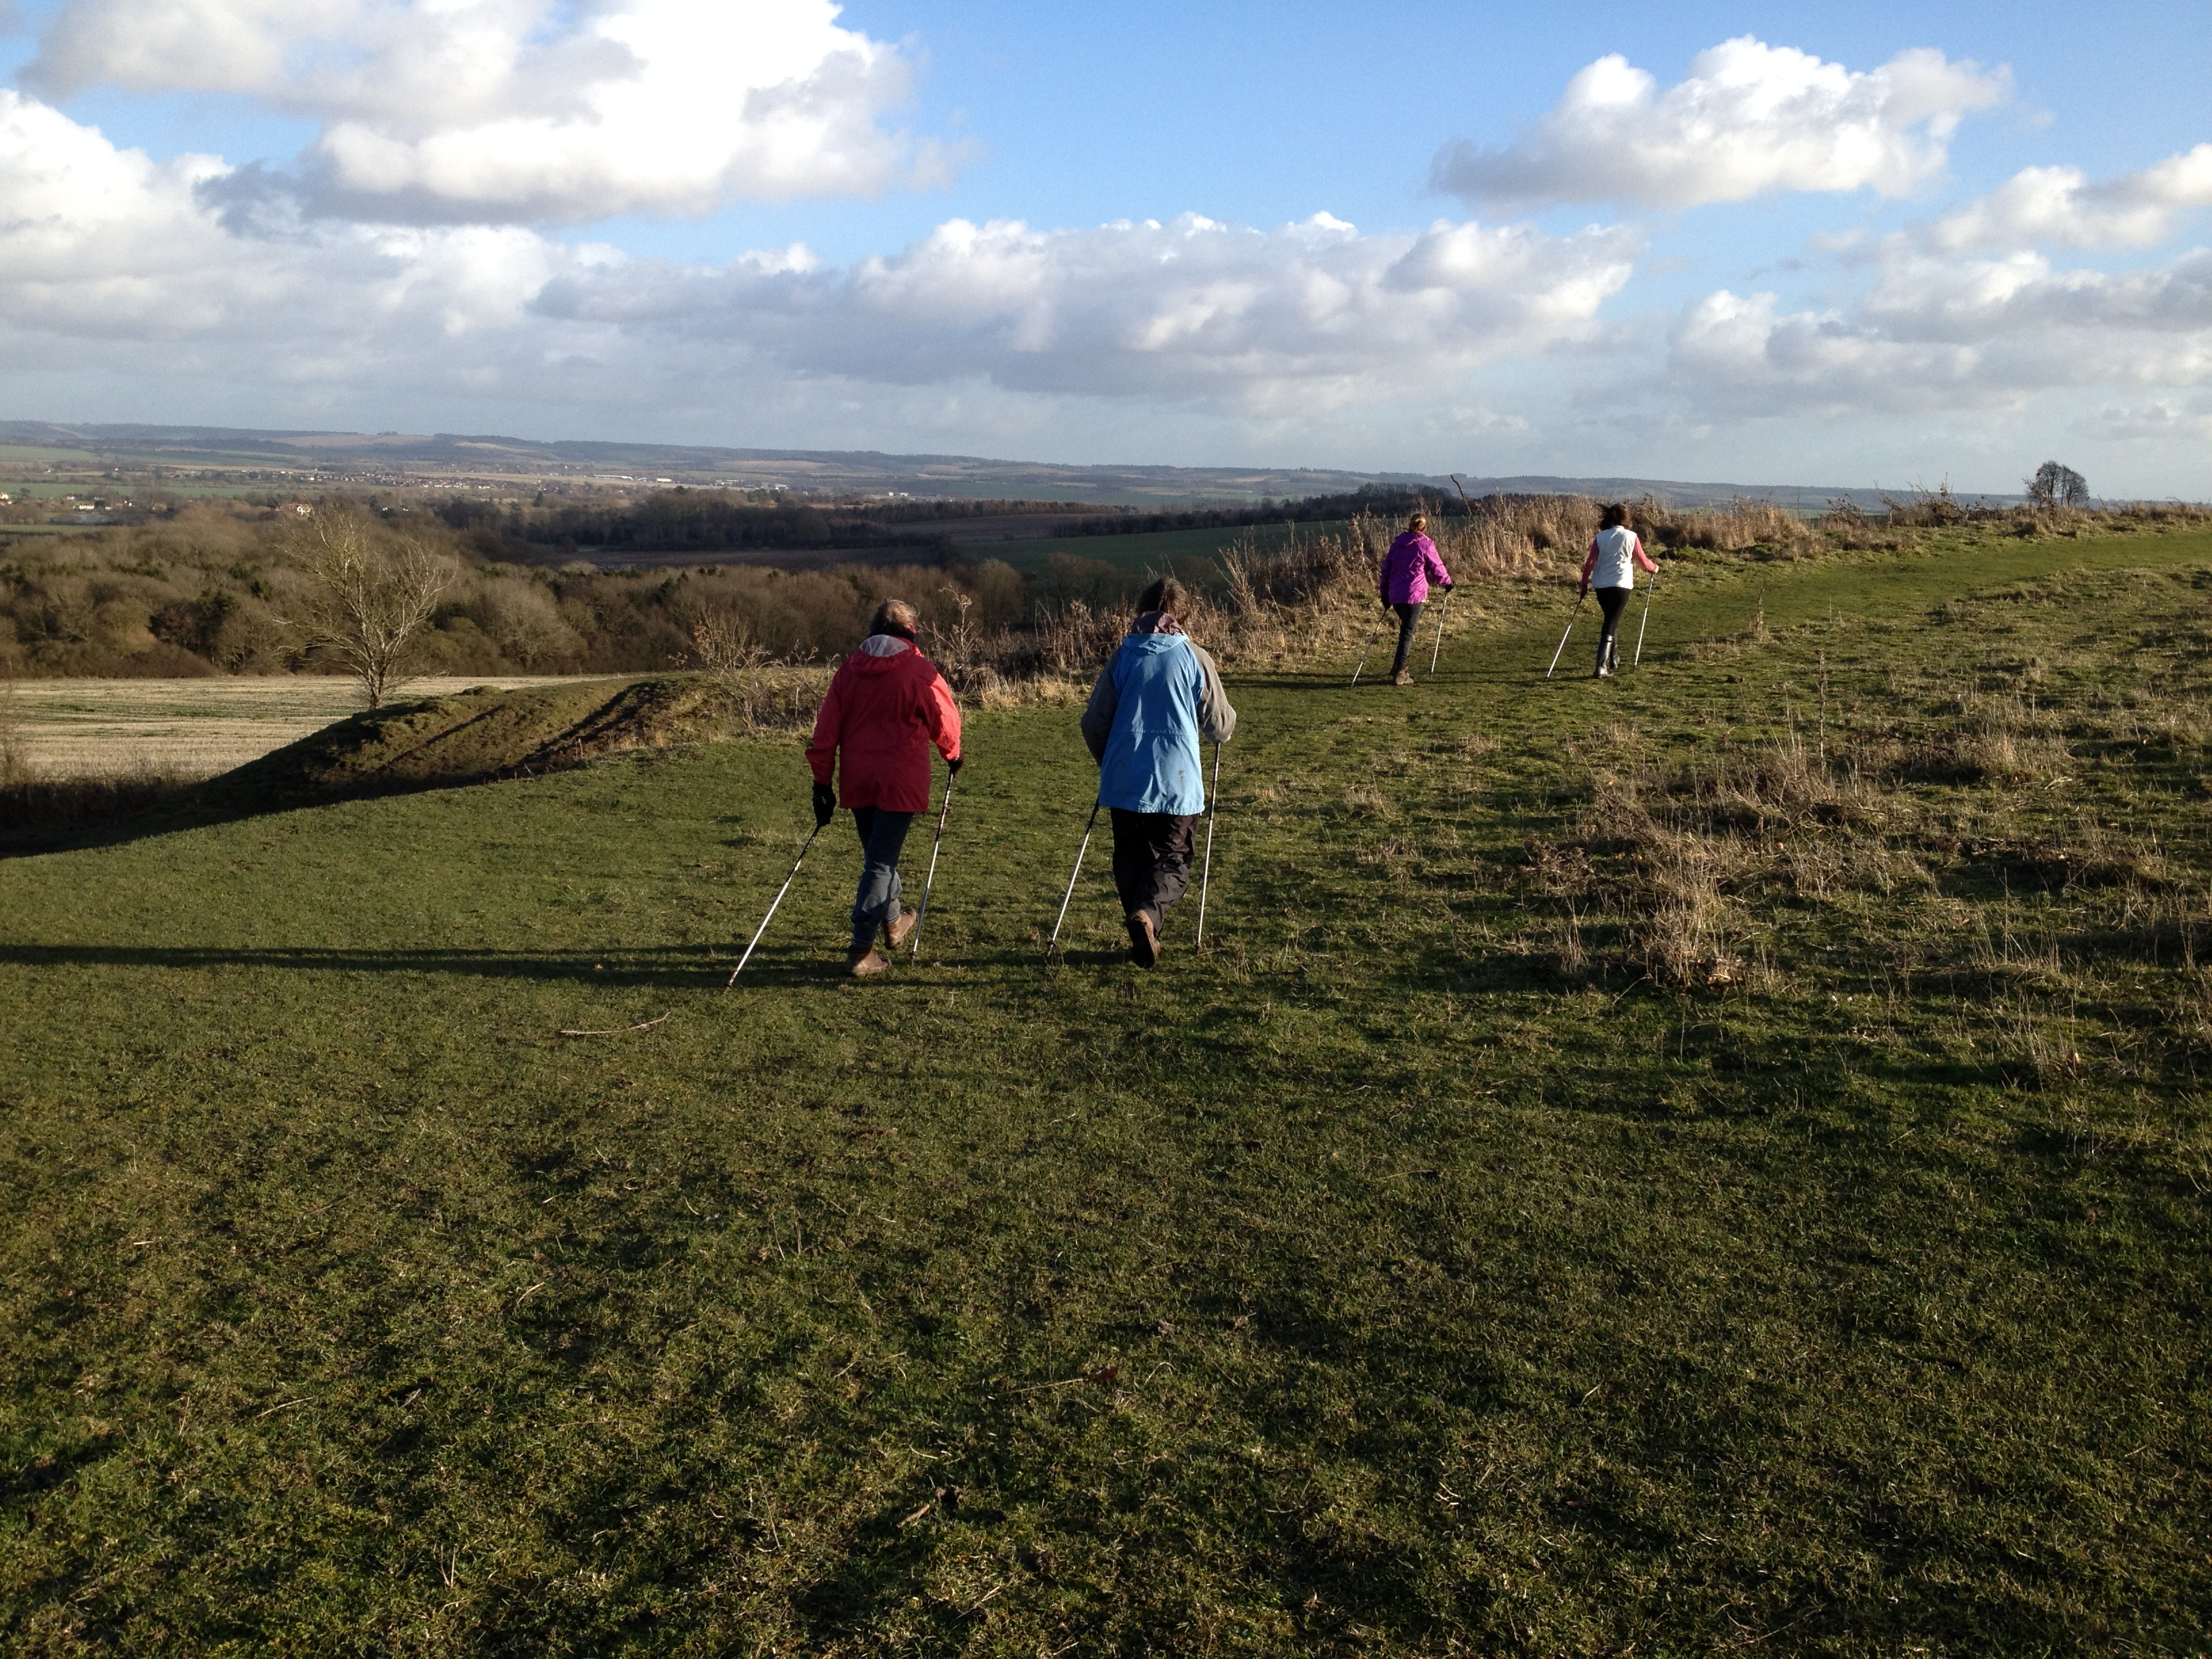 Nordic walking at Wittenham Clumps